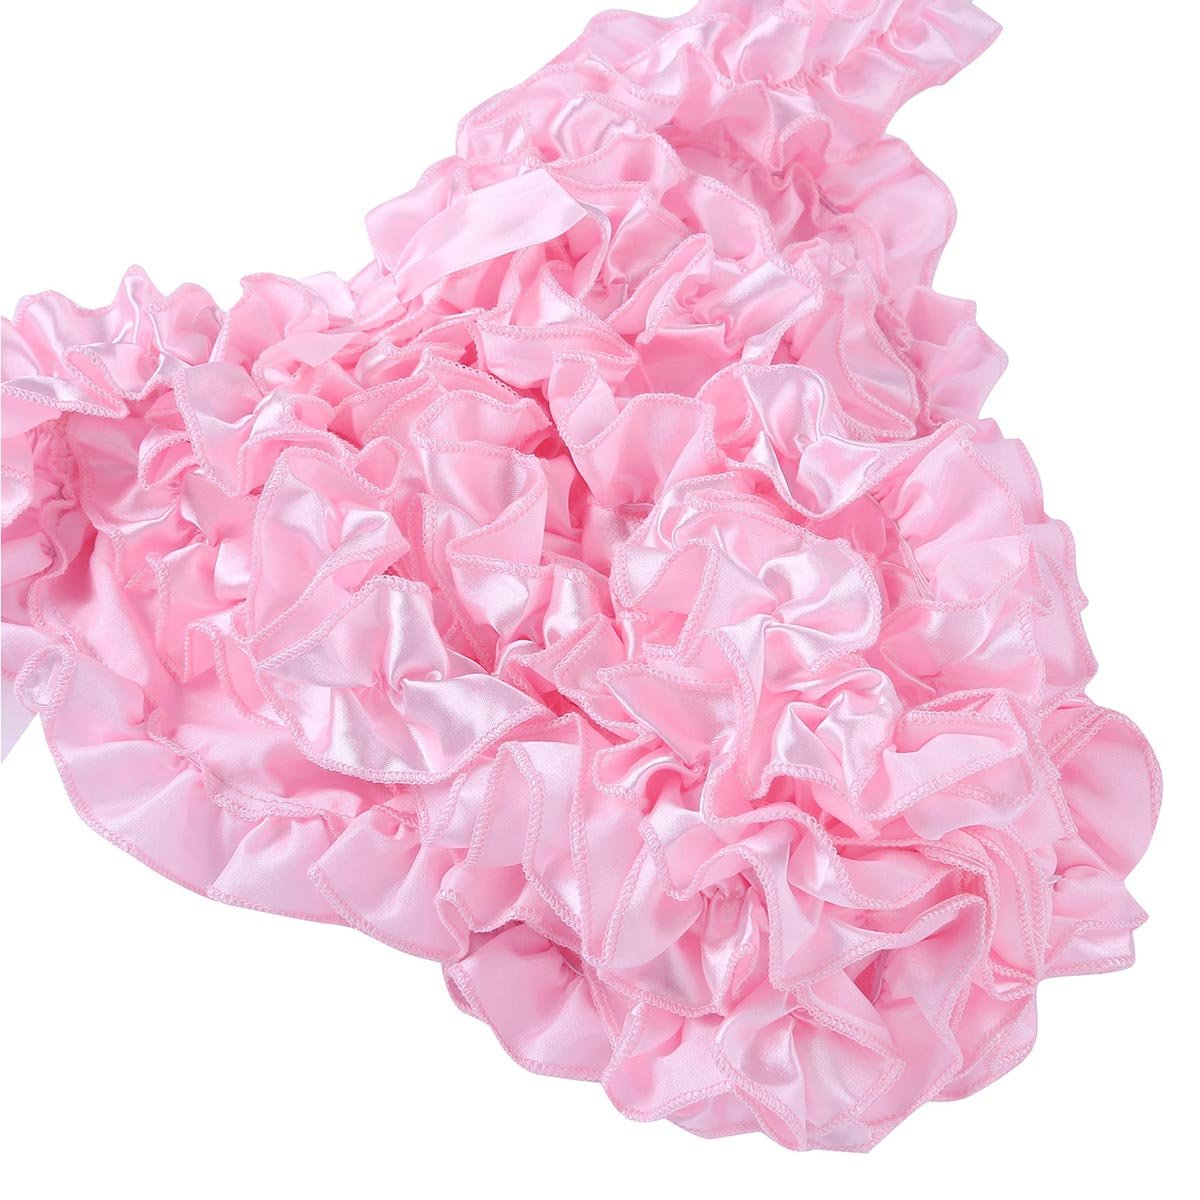 CHICTRY Mens Satin Frilly Sissy Crossdress Ruffled Bloomers Burlesque Panties